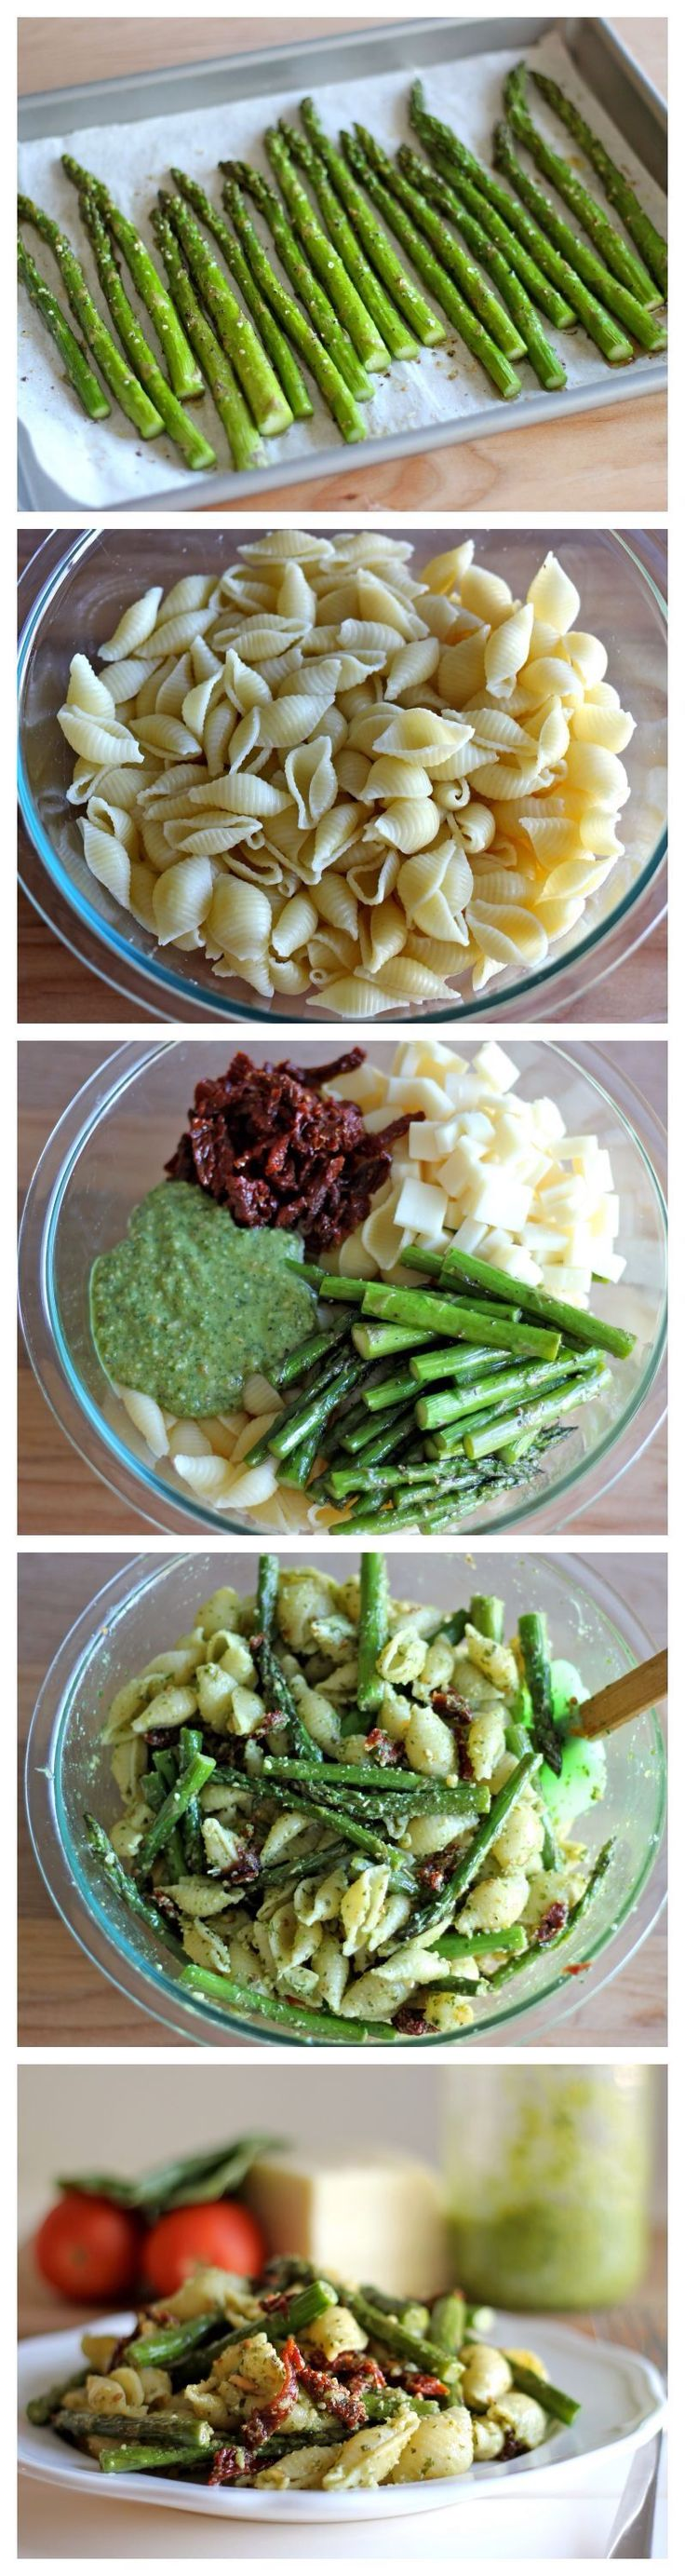 pesto pasta w/ sun dried tomatoes roasted asparagus